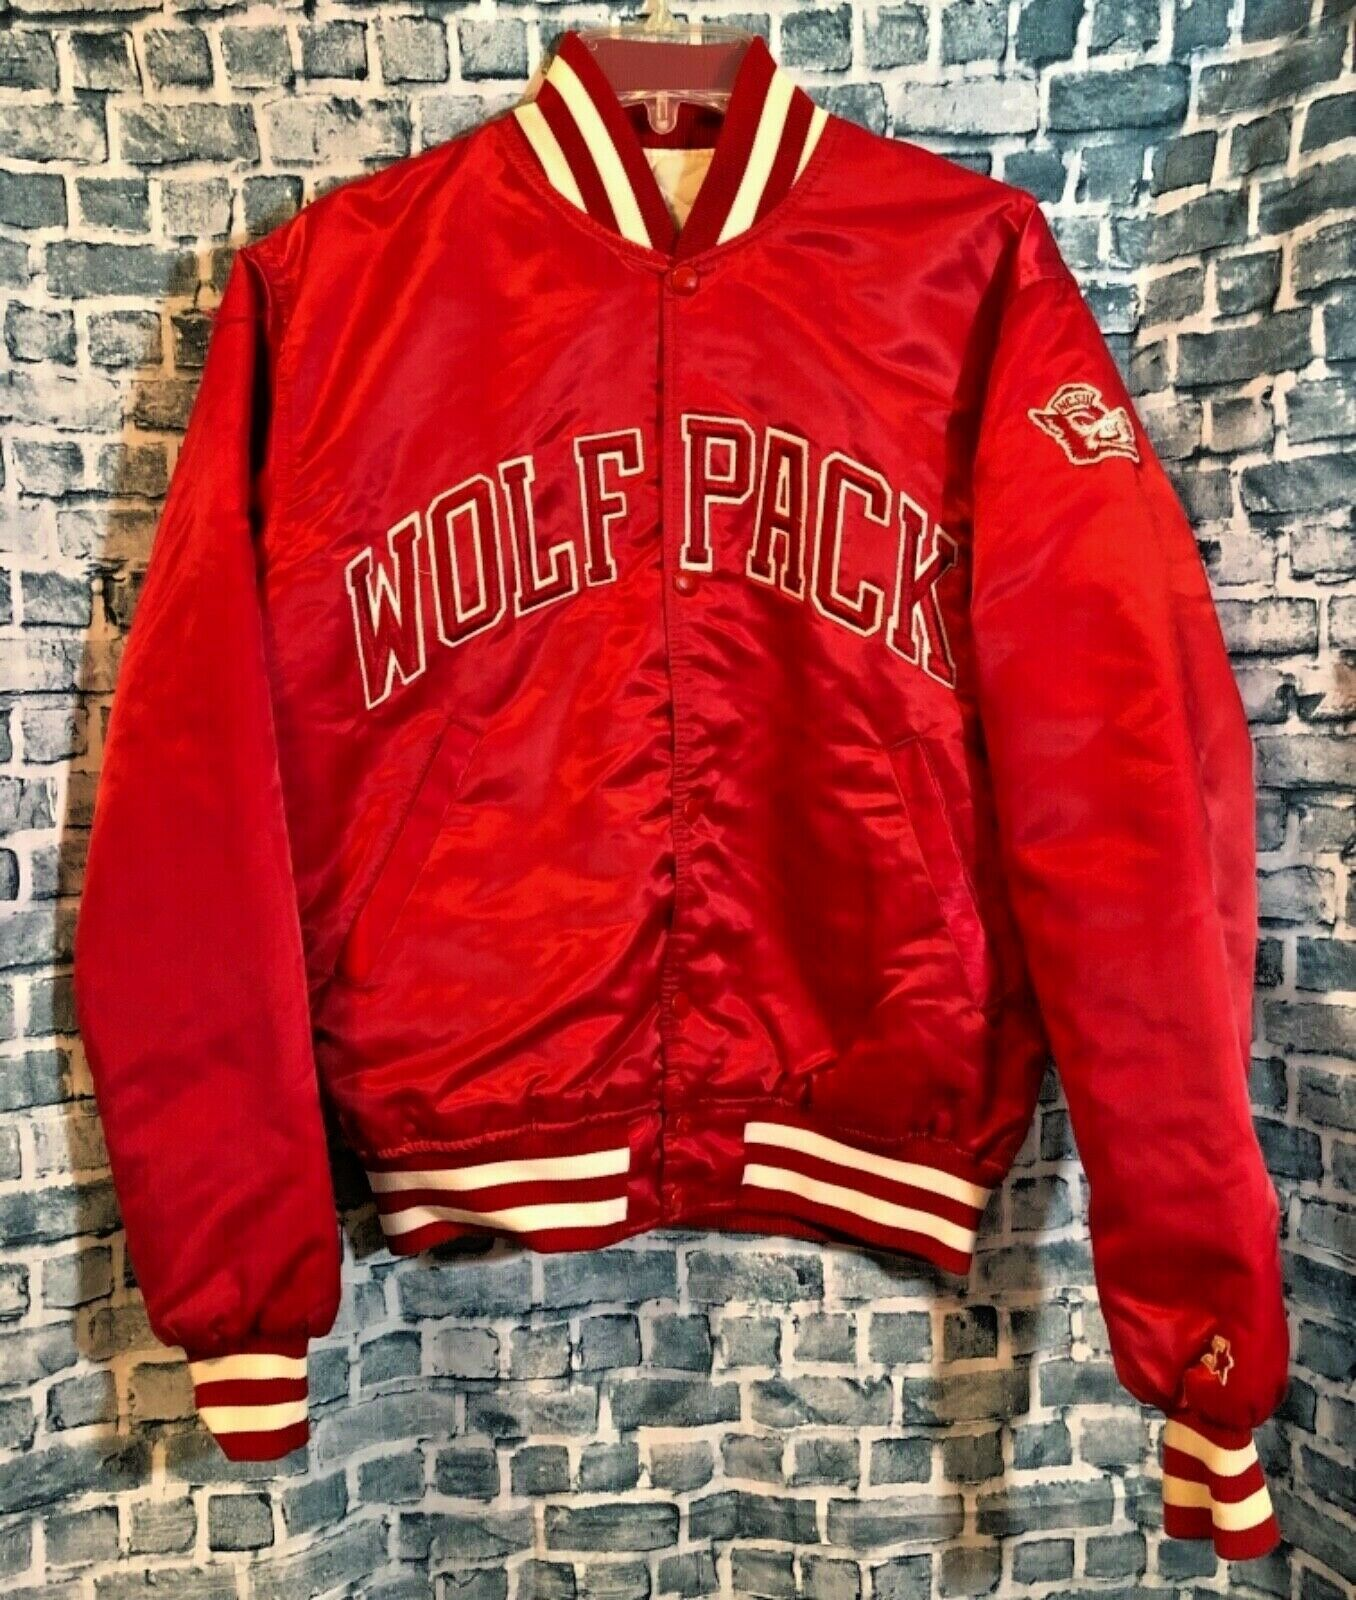 Nc State University Wolfpack Vintage Red Starter Jacket Medium Made In The Usa Ebay Nc State University Jackets Line Jackets [ 1600 x 1356 Pixel ]